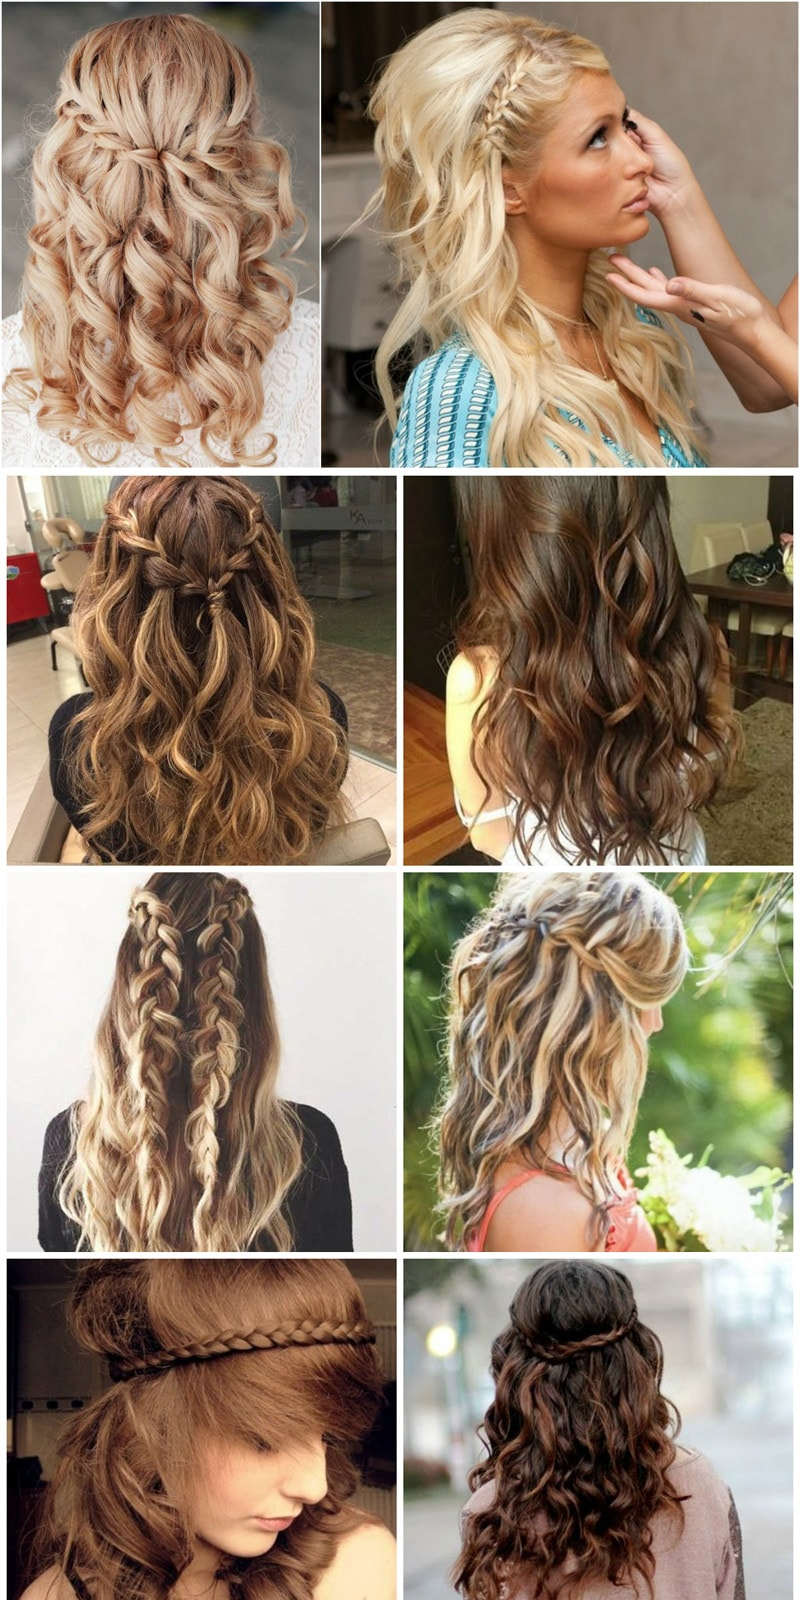 braid-hairstyle-for-wavy-hair